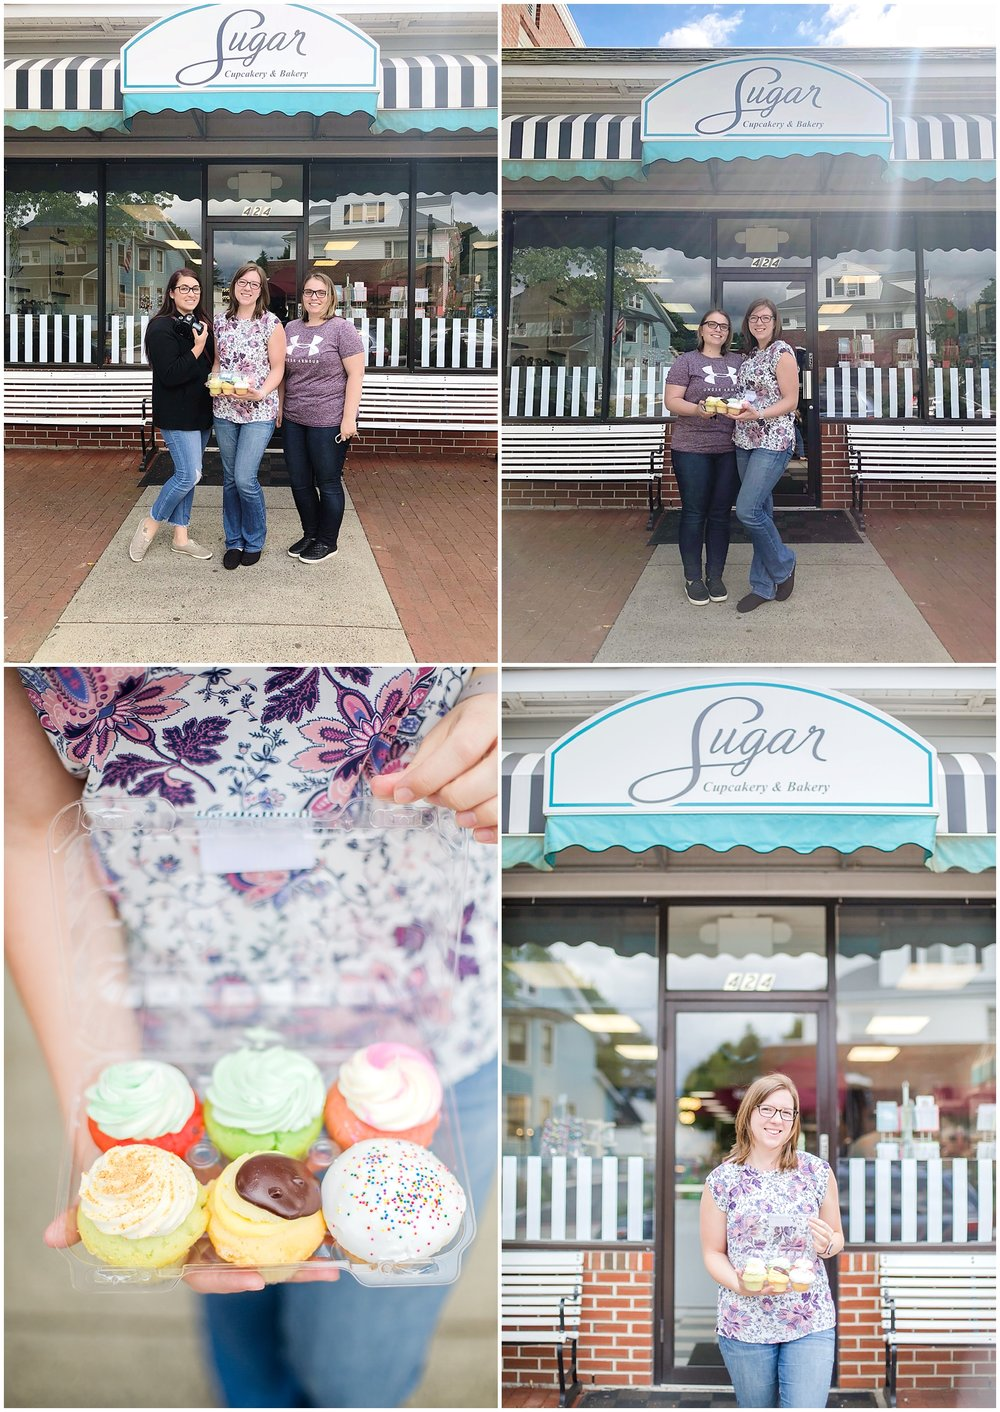 I had such a blast going to Sugar Bakery with Jamie and Sydney! They had the best flavors in stock!! Also, thank you so much Sydney for capturing some images of me at my favorite place! :)